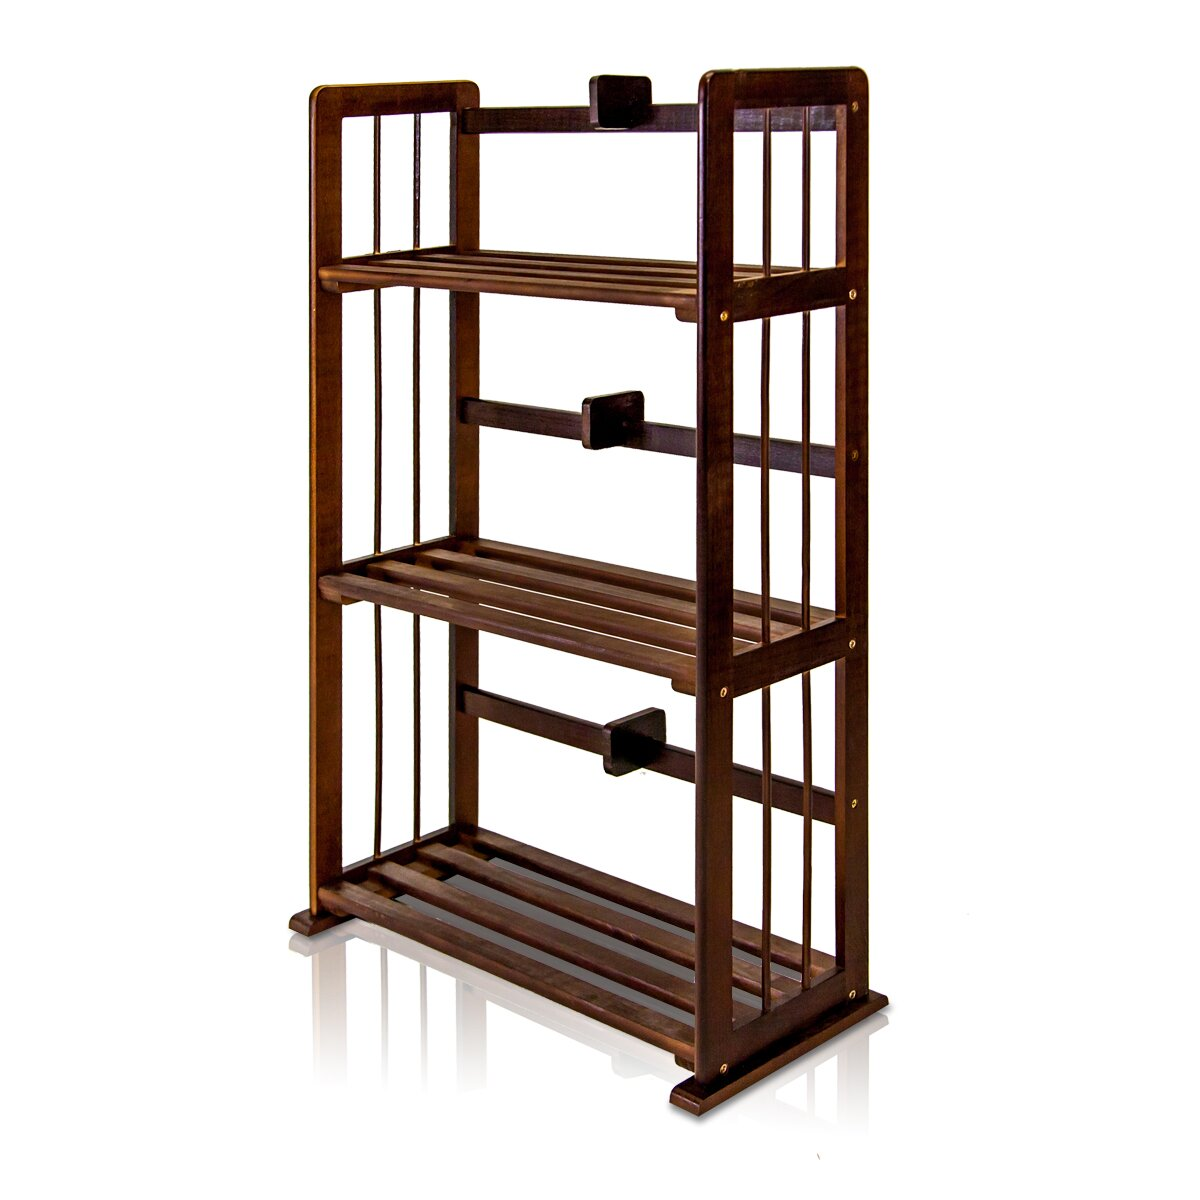 wildon home 34 etagere bookcase reviews wayfair. Black Bedroom Furniture Sets. Home Design Ideas